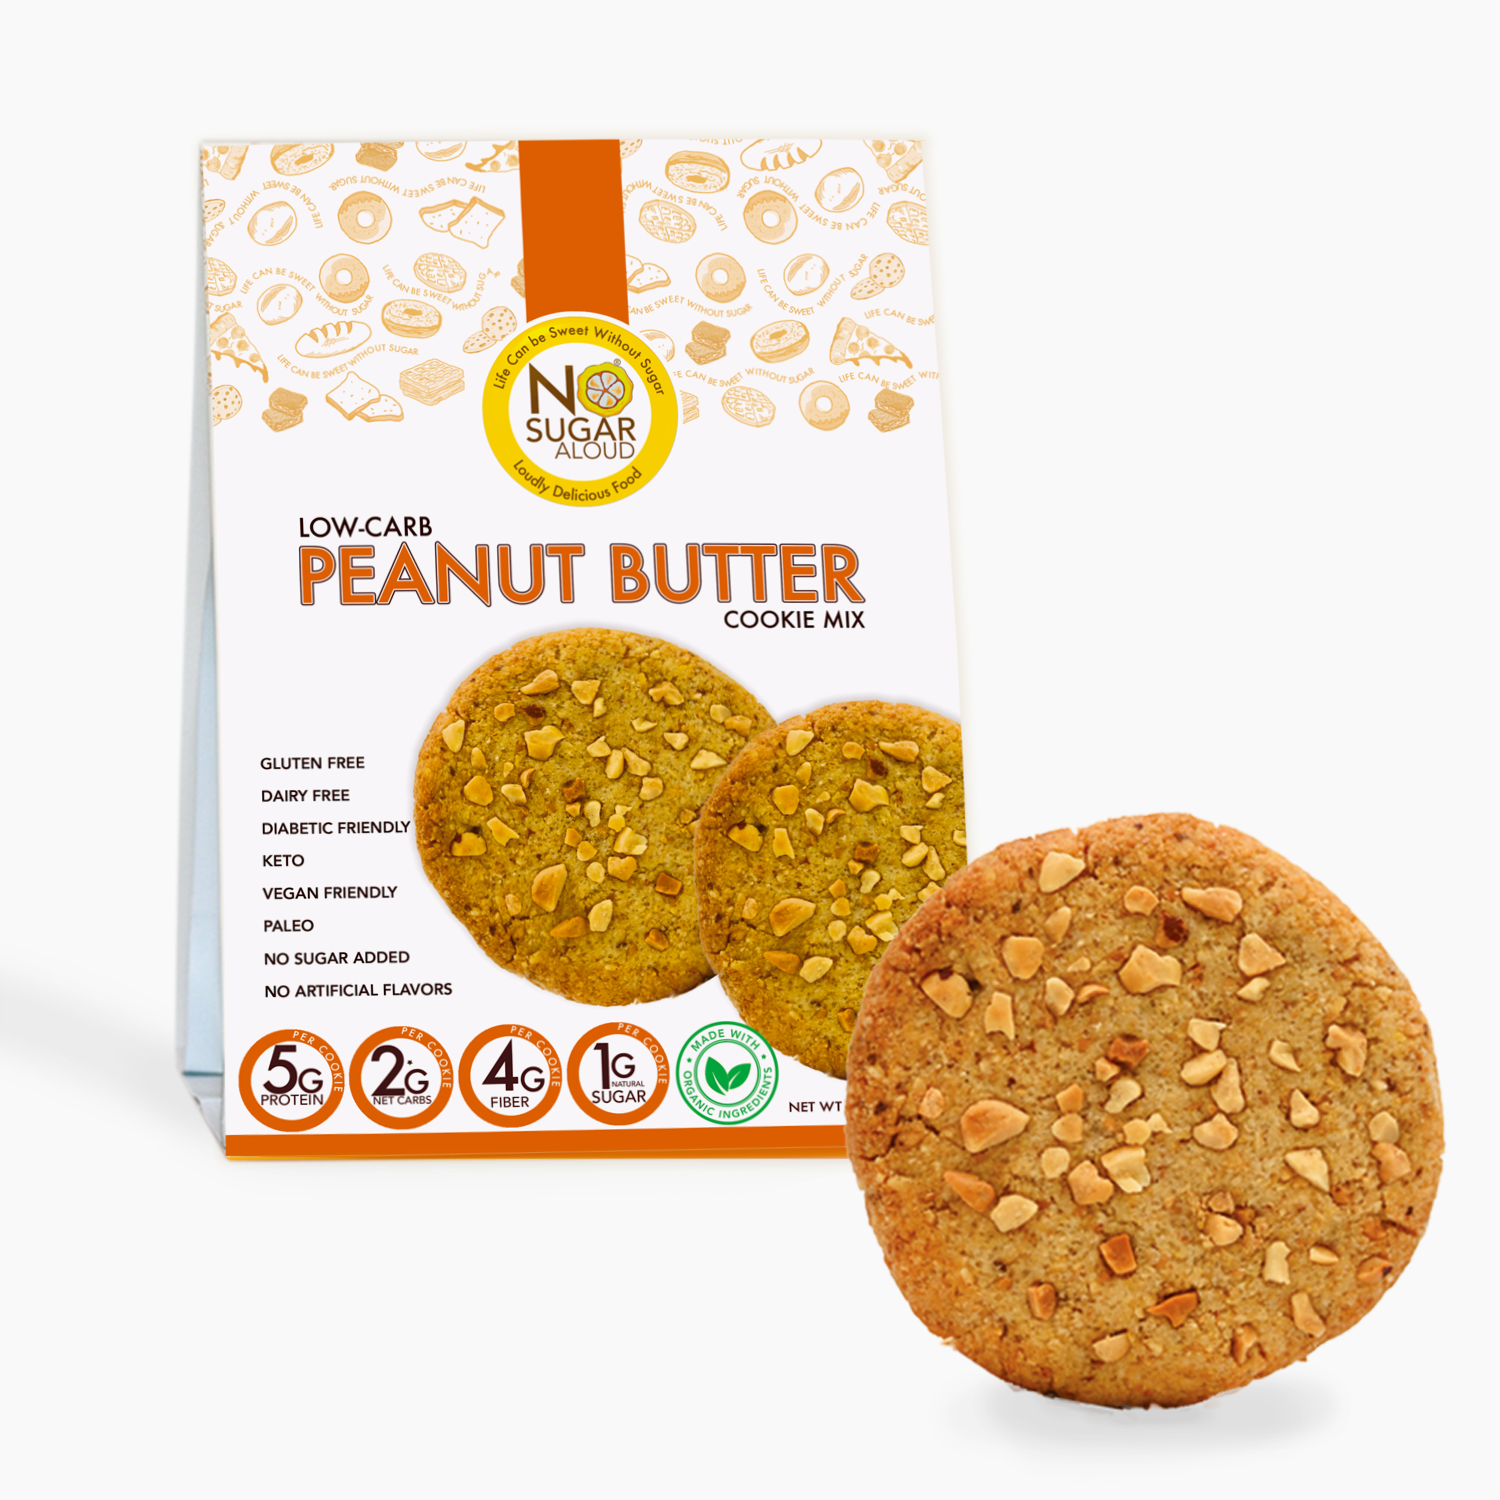 Low Carb Peanut Butter Cookie Mix   Trada Marketplace